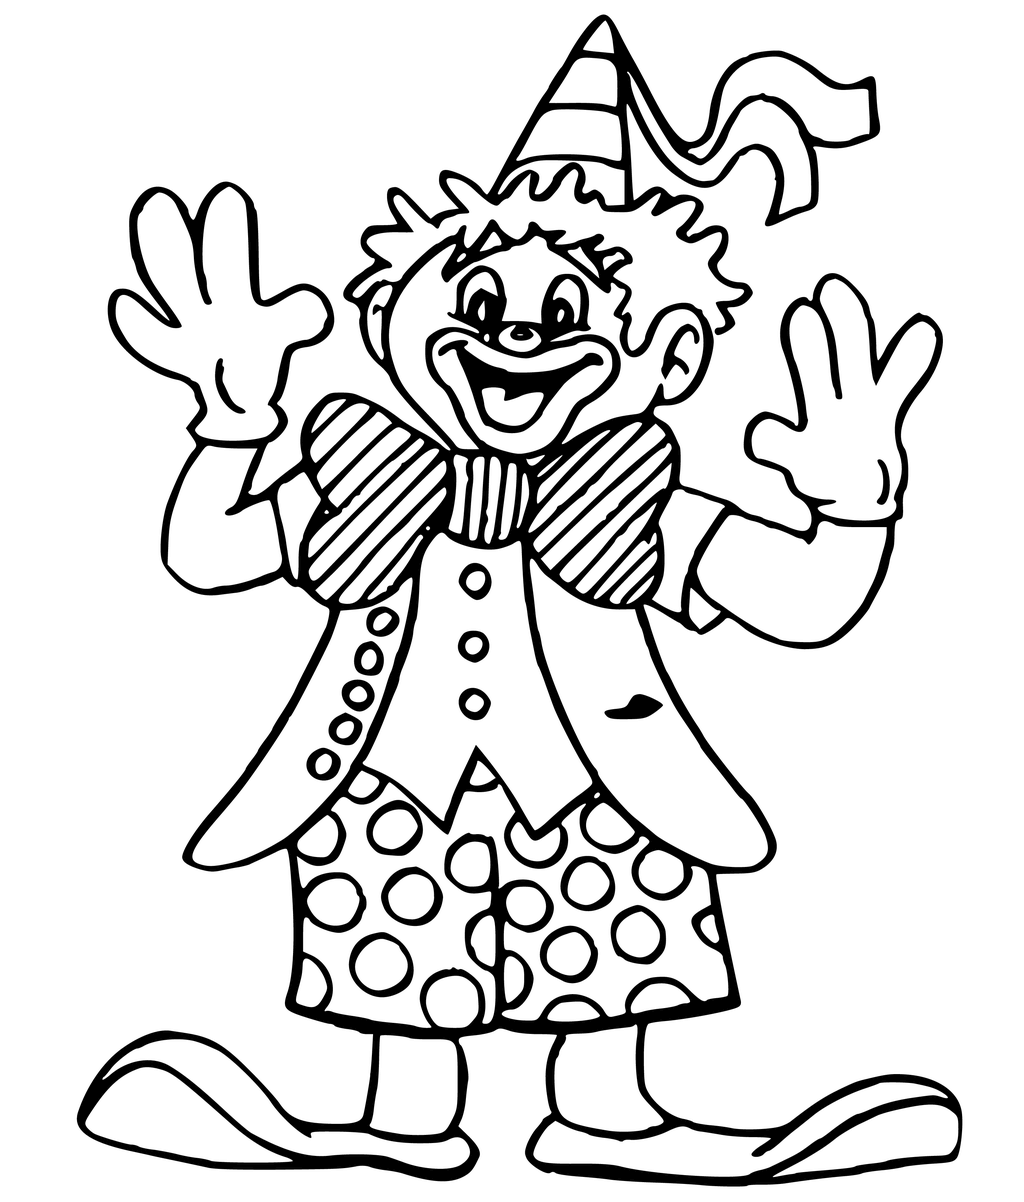 clown coloring pages printable printable clown coloring pages for kids cool2bkids clown pages printable coloring